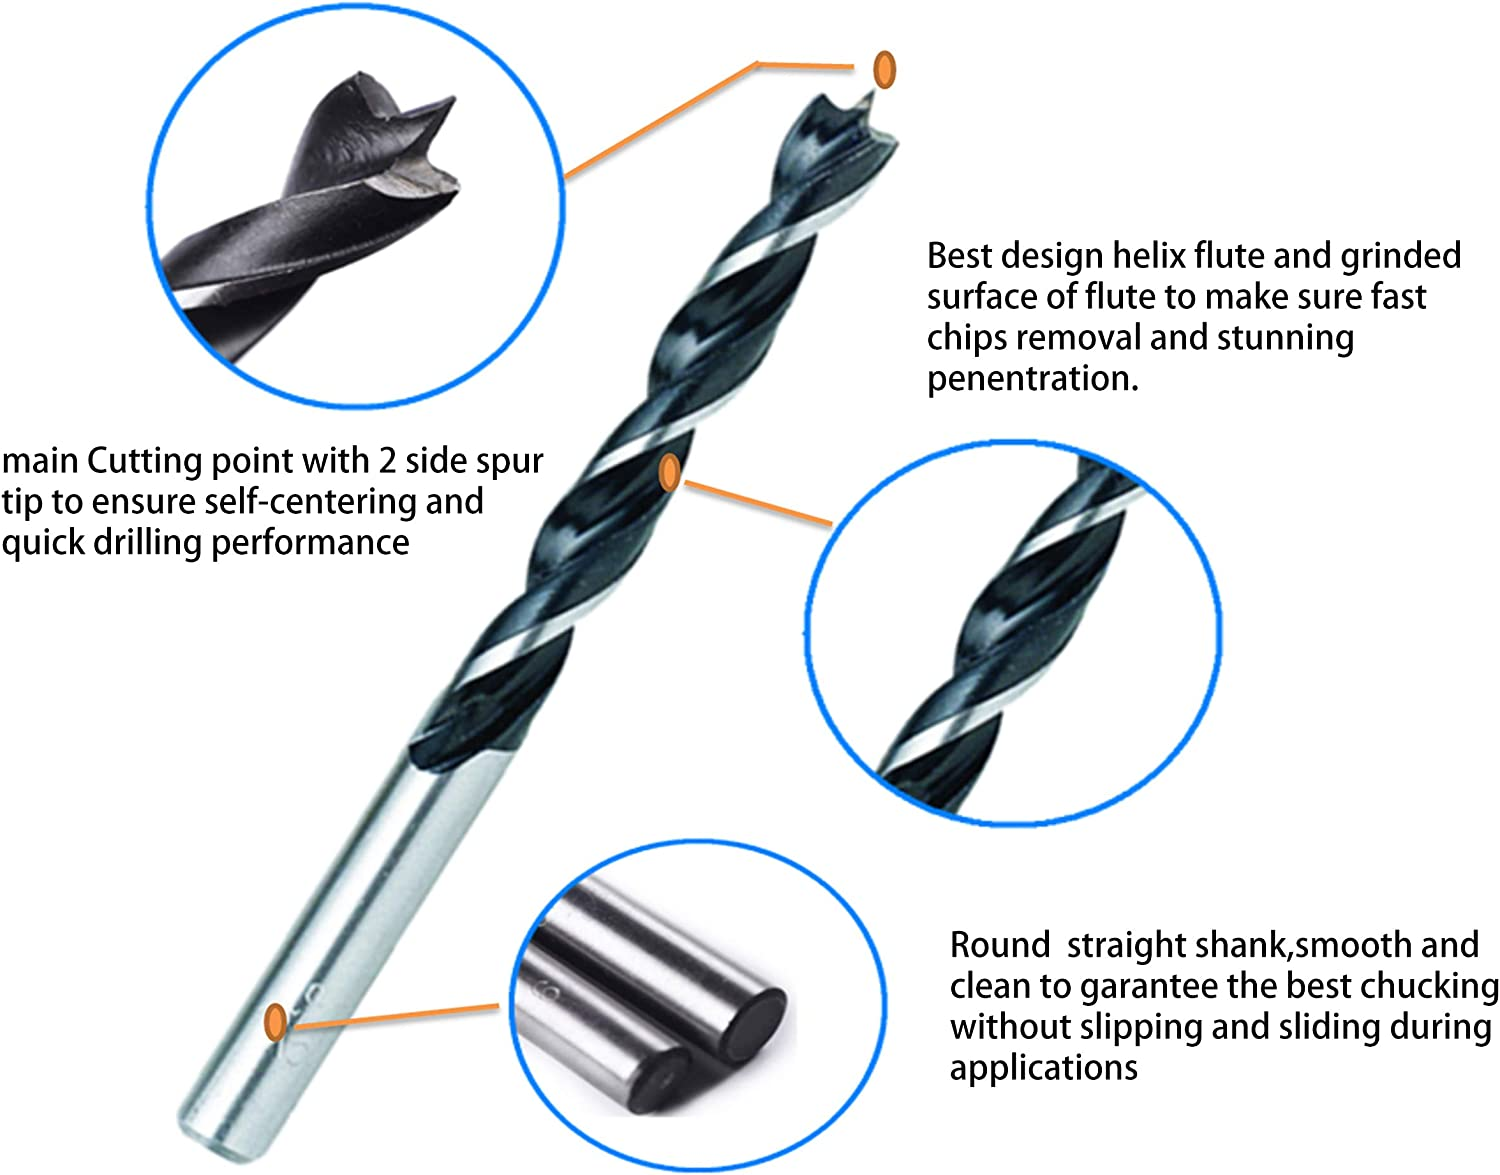 Softwood Cabinet 10Pcs 1//2 Inch Brad Point Wood Drill Bits Set Woodworking Drill Bit Side Spur Cutting Brad Point Drills Drill for Hardwood Furniture,cupboard,woodworkiing job. Polywood